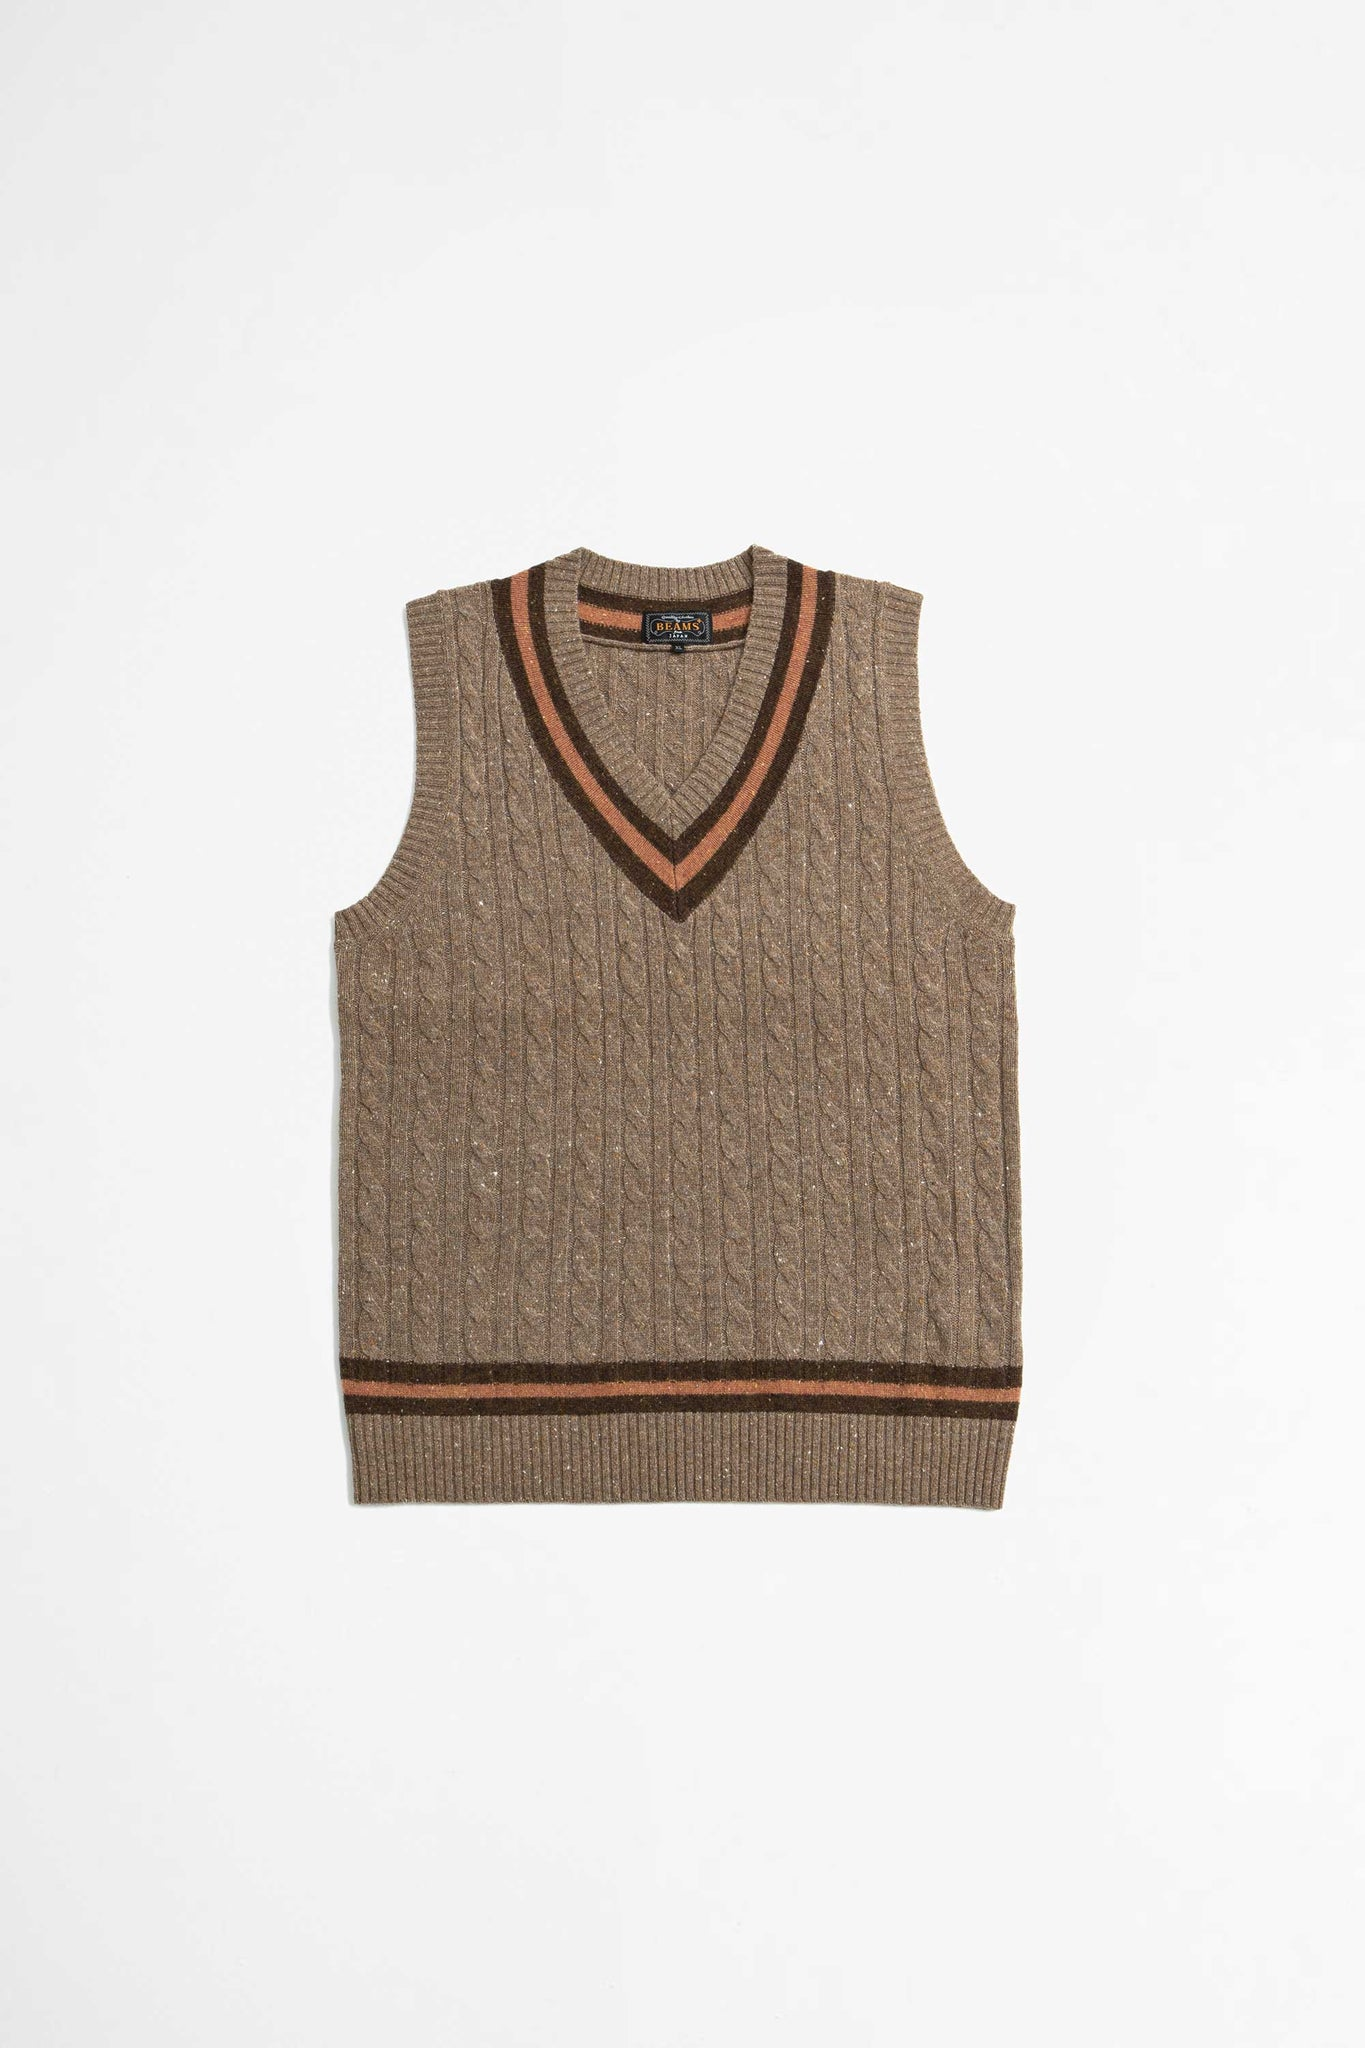 Cricket vest brown